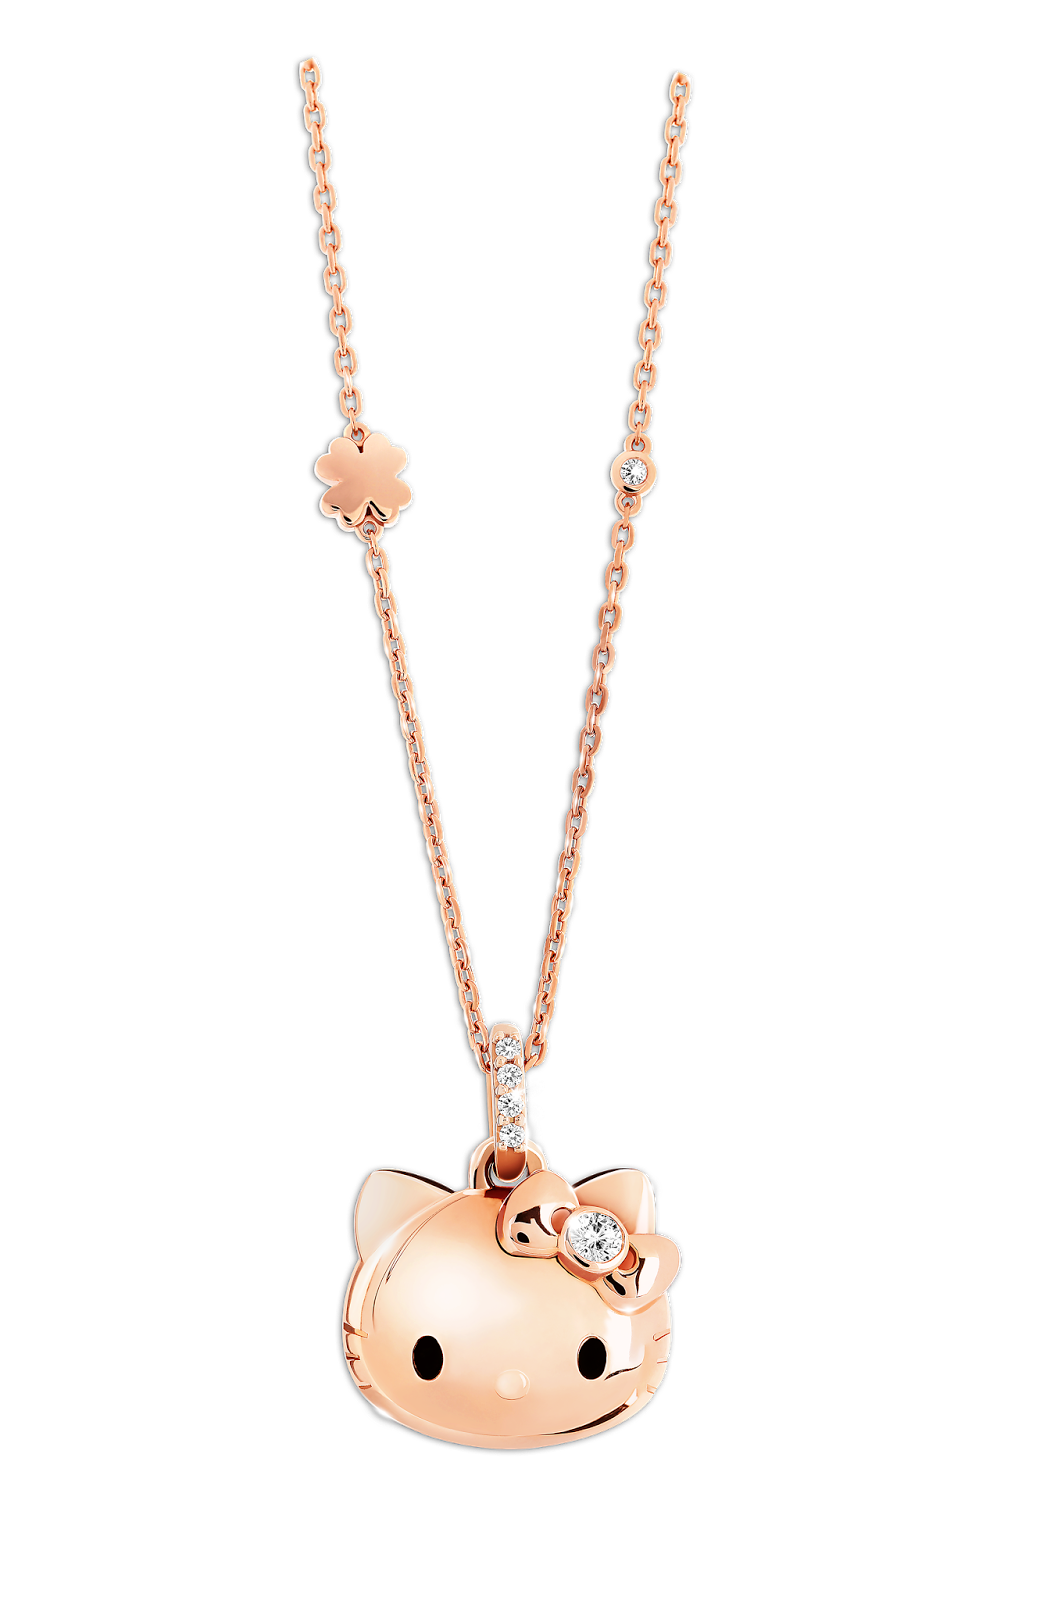 JUBILEE Hello Kitty Happy-Go-Lucky Collection ... - Hello Kitty Necklace